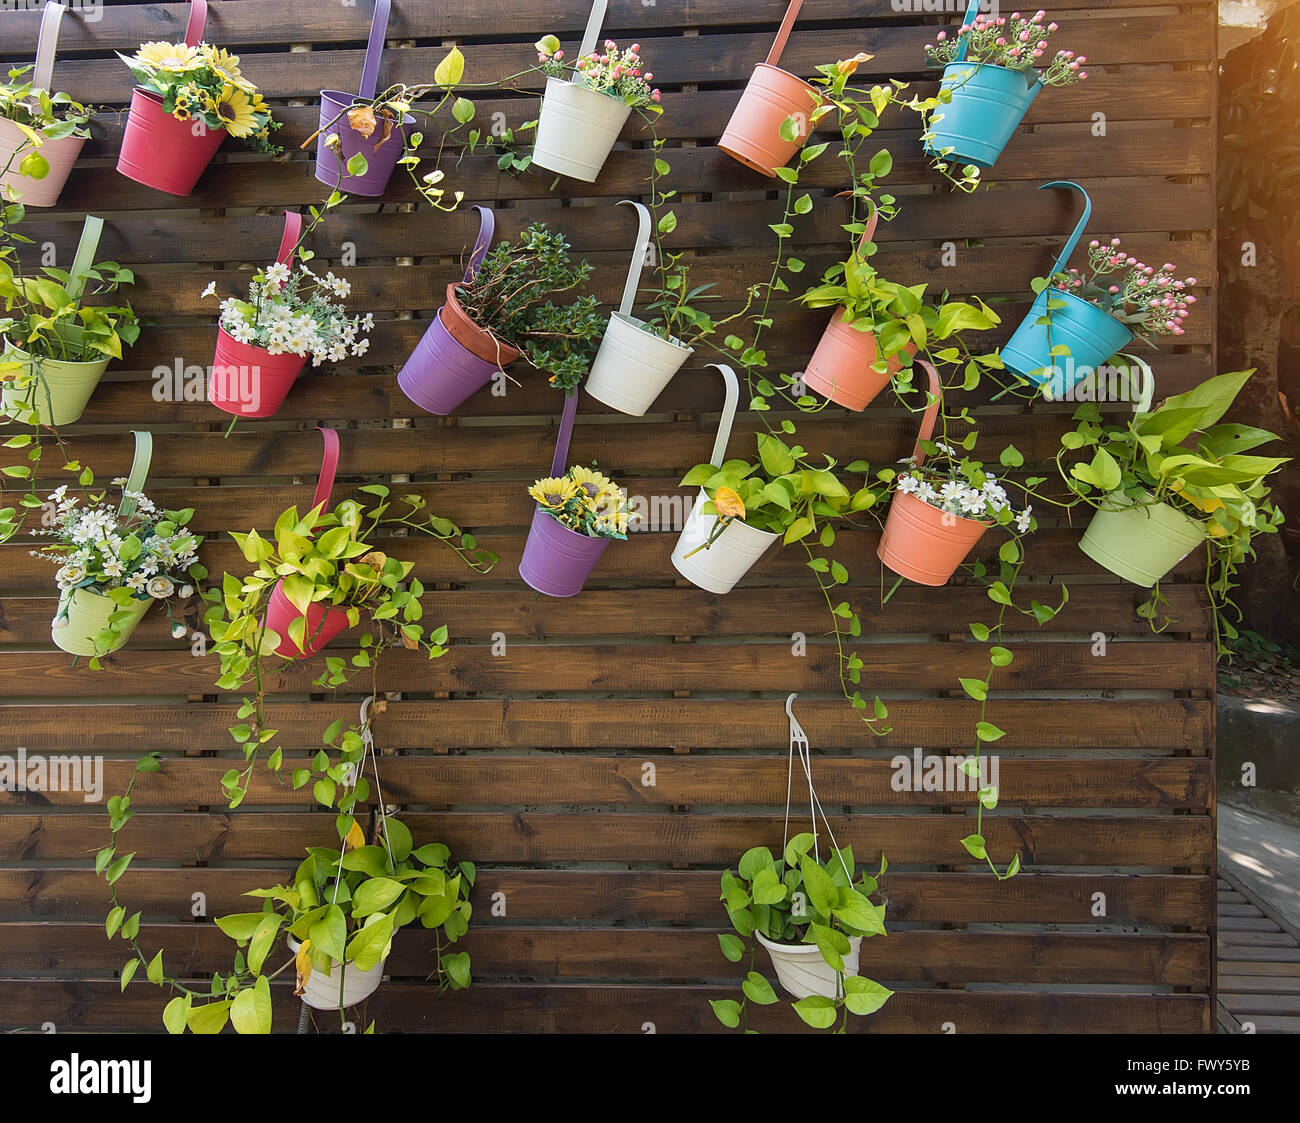 Hanging flower pots with fence stock photo royalty free for Fence hanging flower pots